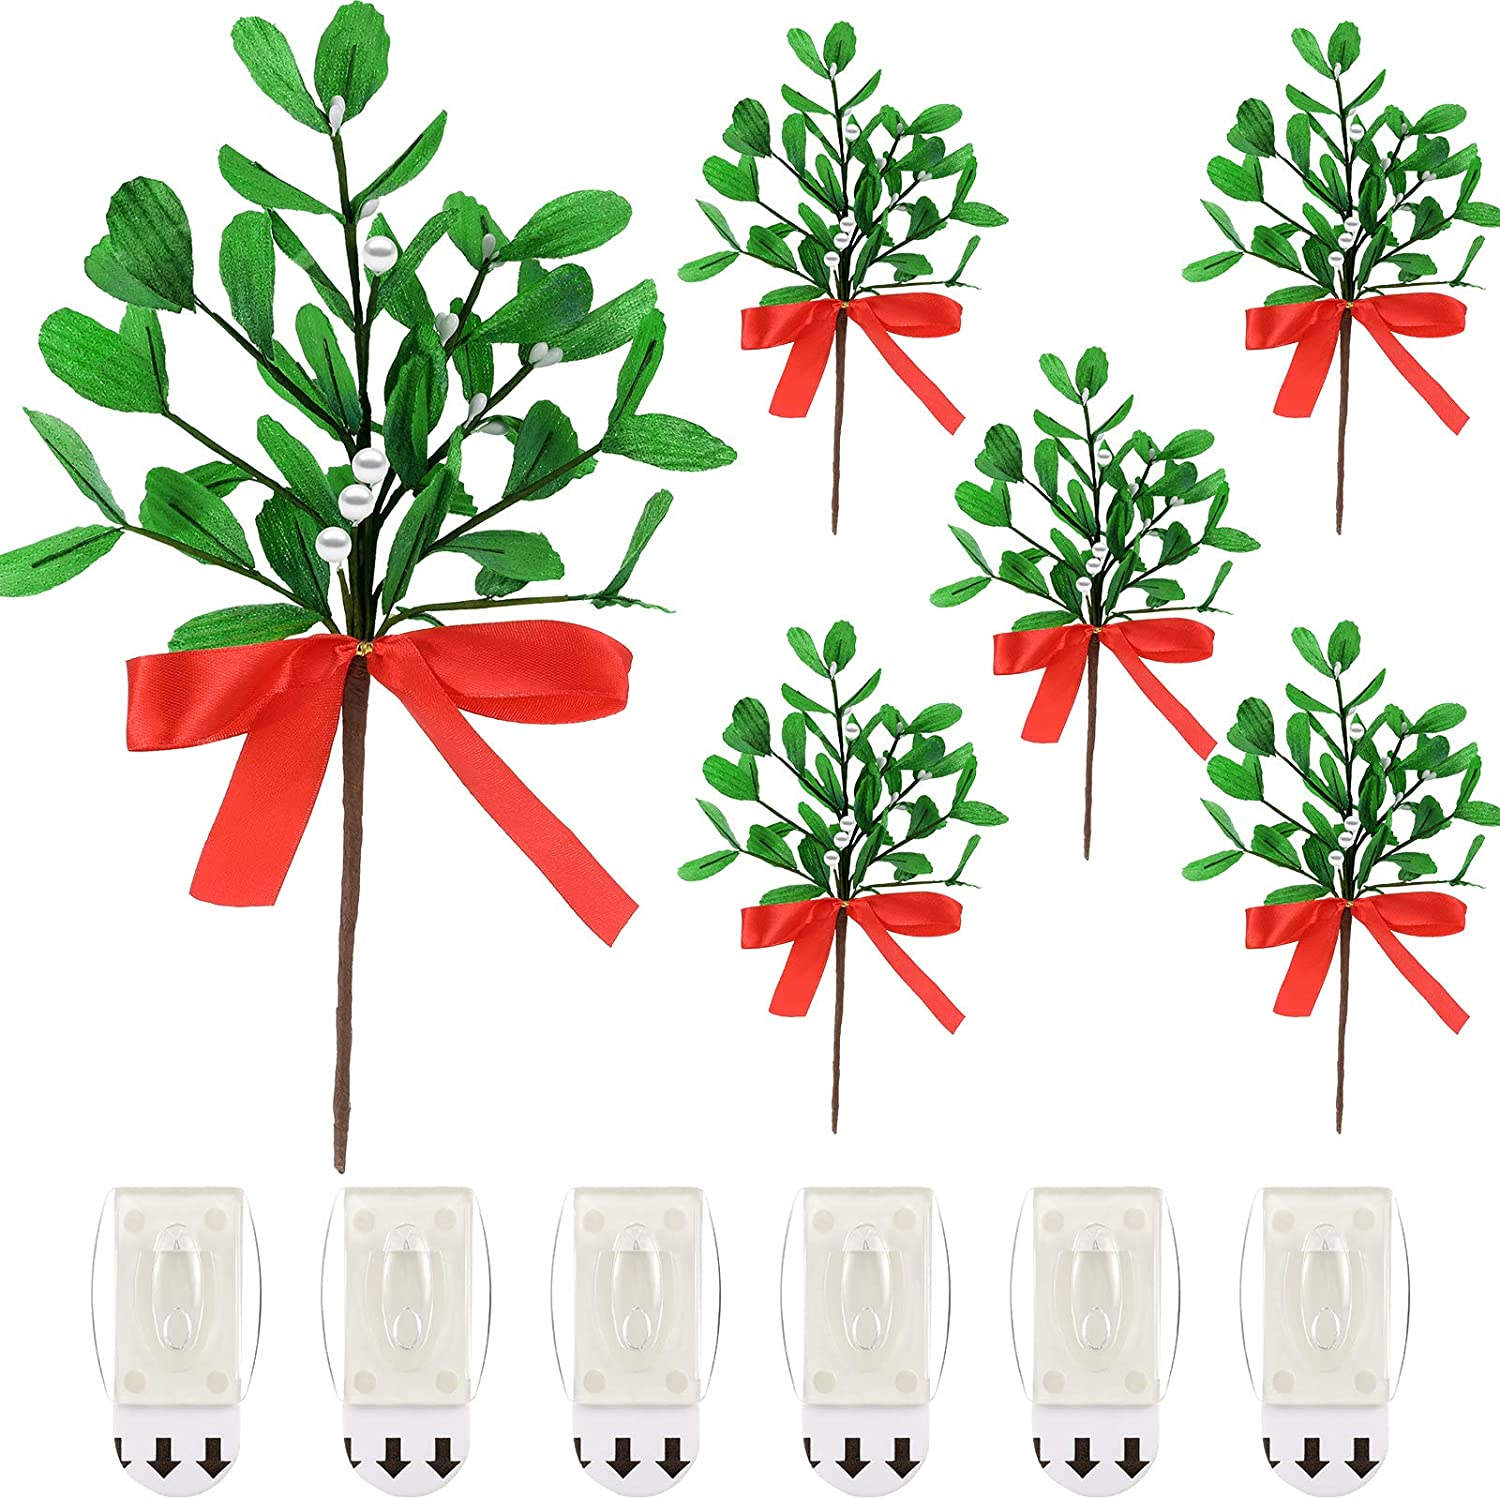 WILLBOND 6 Pieces Artificial Mistletoe Picks Christmas Fake Mistletoe Branches with Red Bow and 6 Pieces Sticky Hooks Adhesive Wall Hanging Hooks for Christmas Party Decor